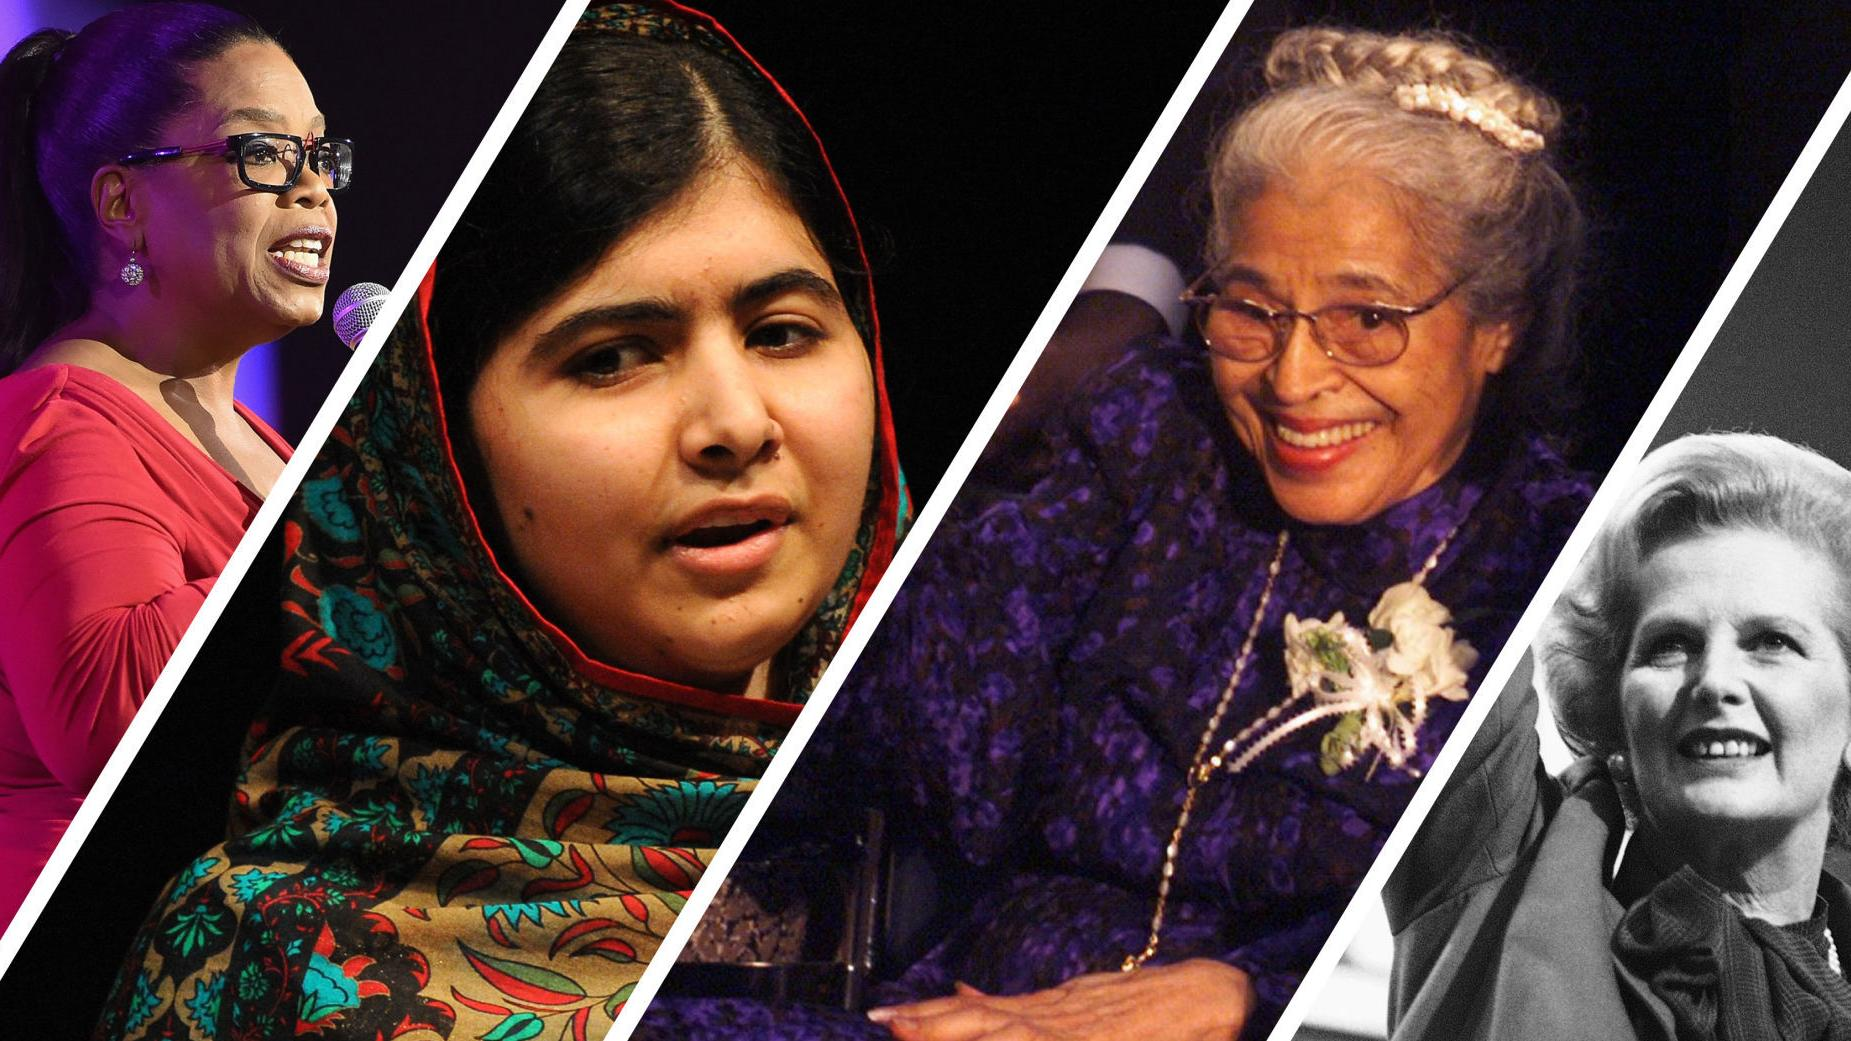 20 of the most influential women in history